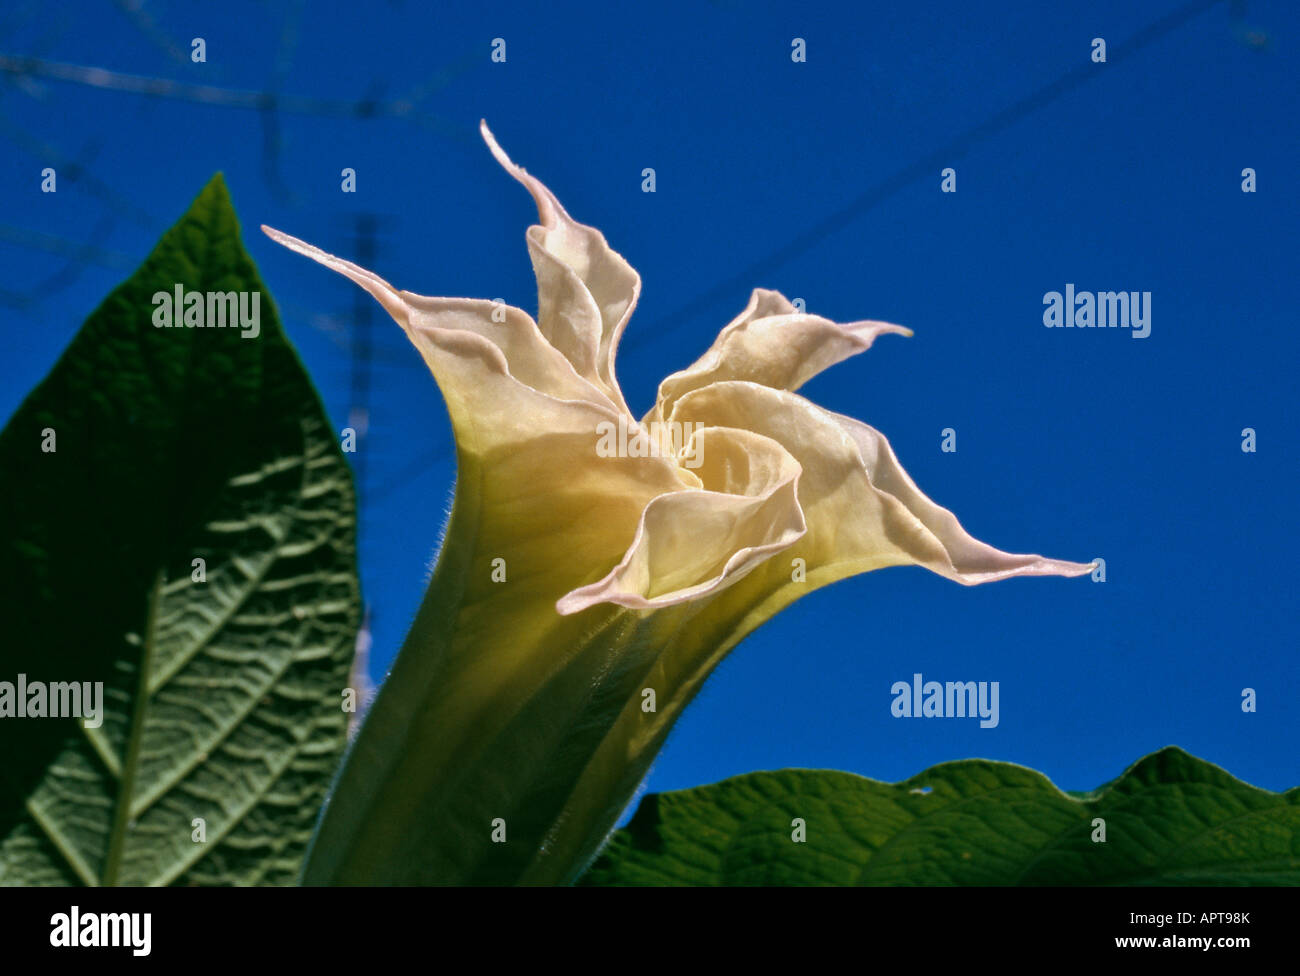 Brugmansia Datura pinkish white unusual shape detached against a blue sky - Stock Image